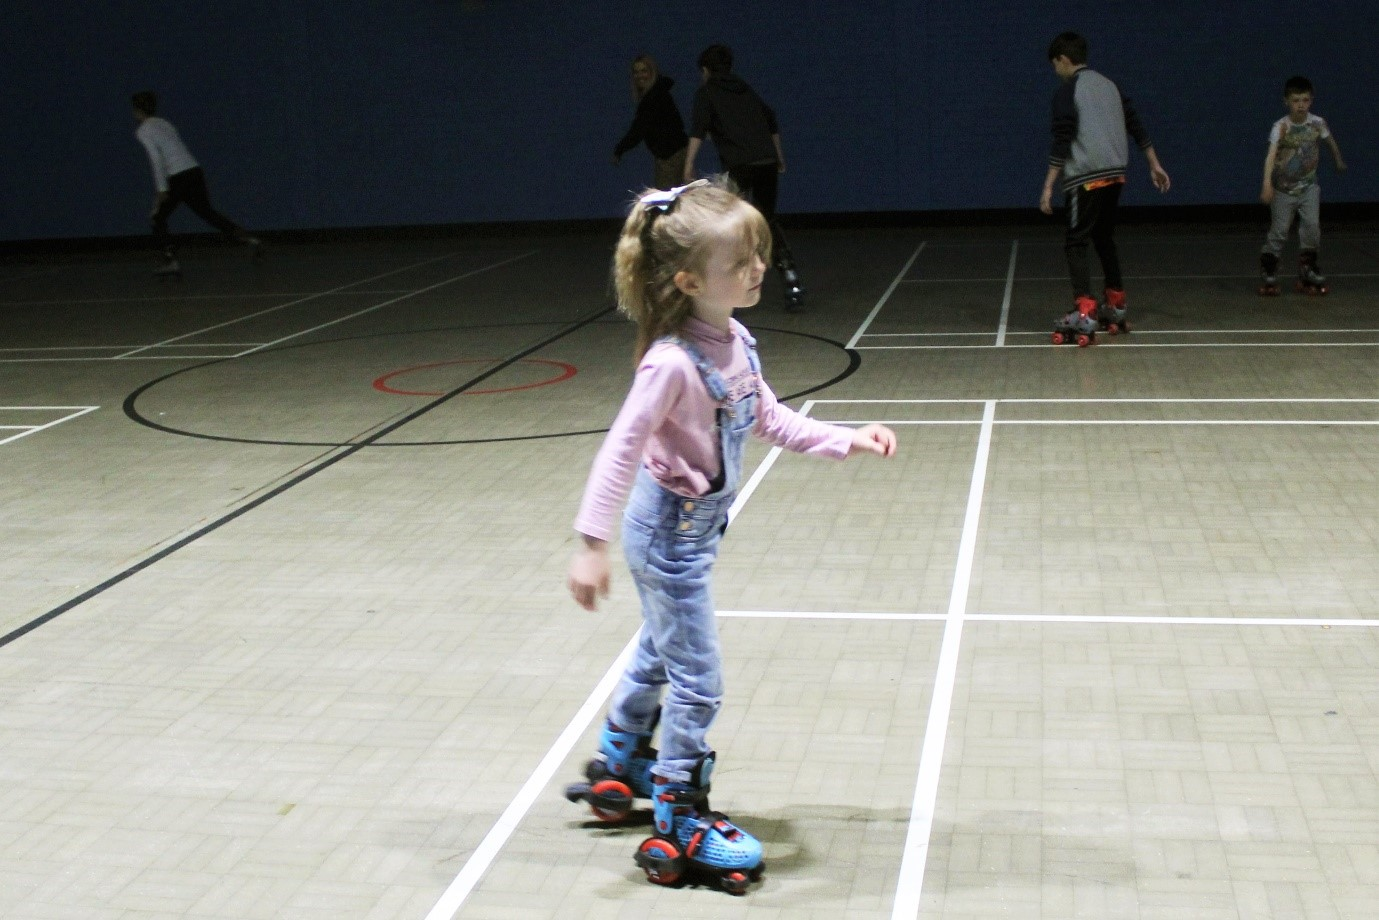 roller skating at The Adrenaline centre in Rossendale Adrenaline Valley